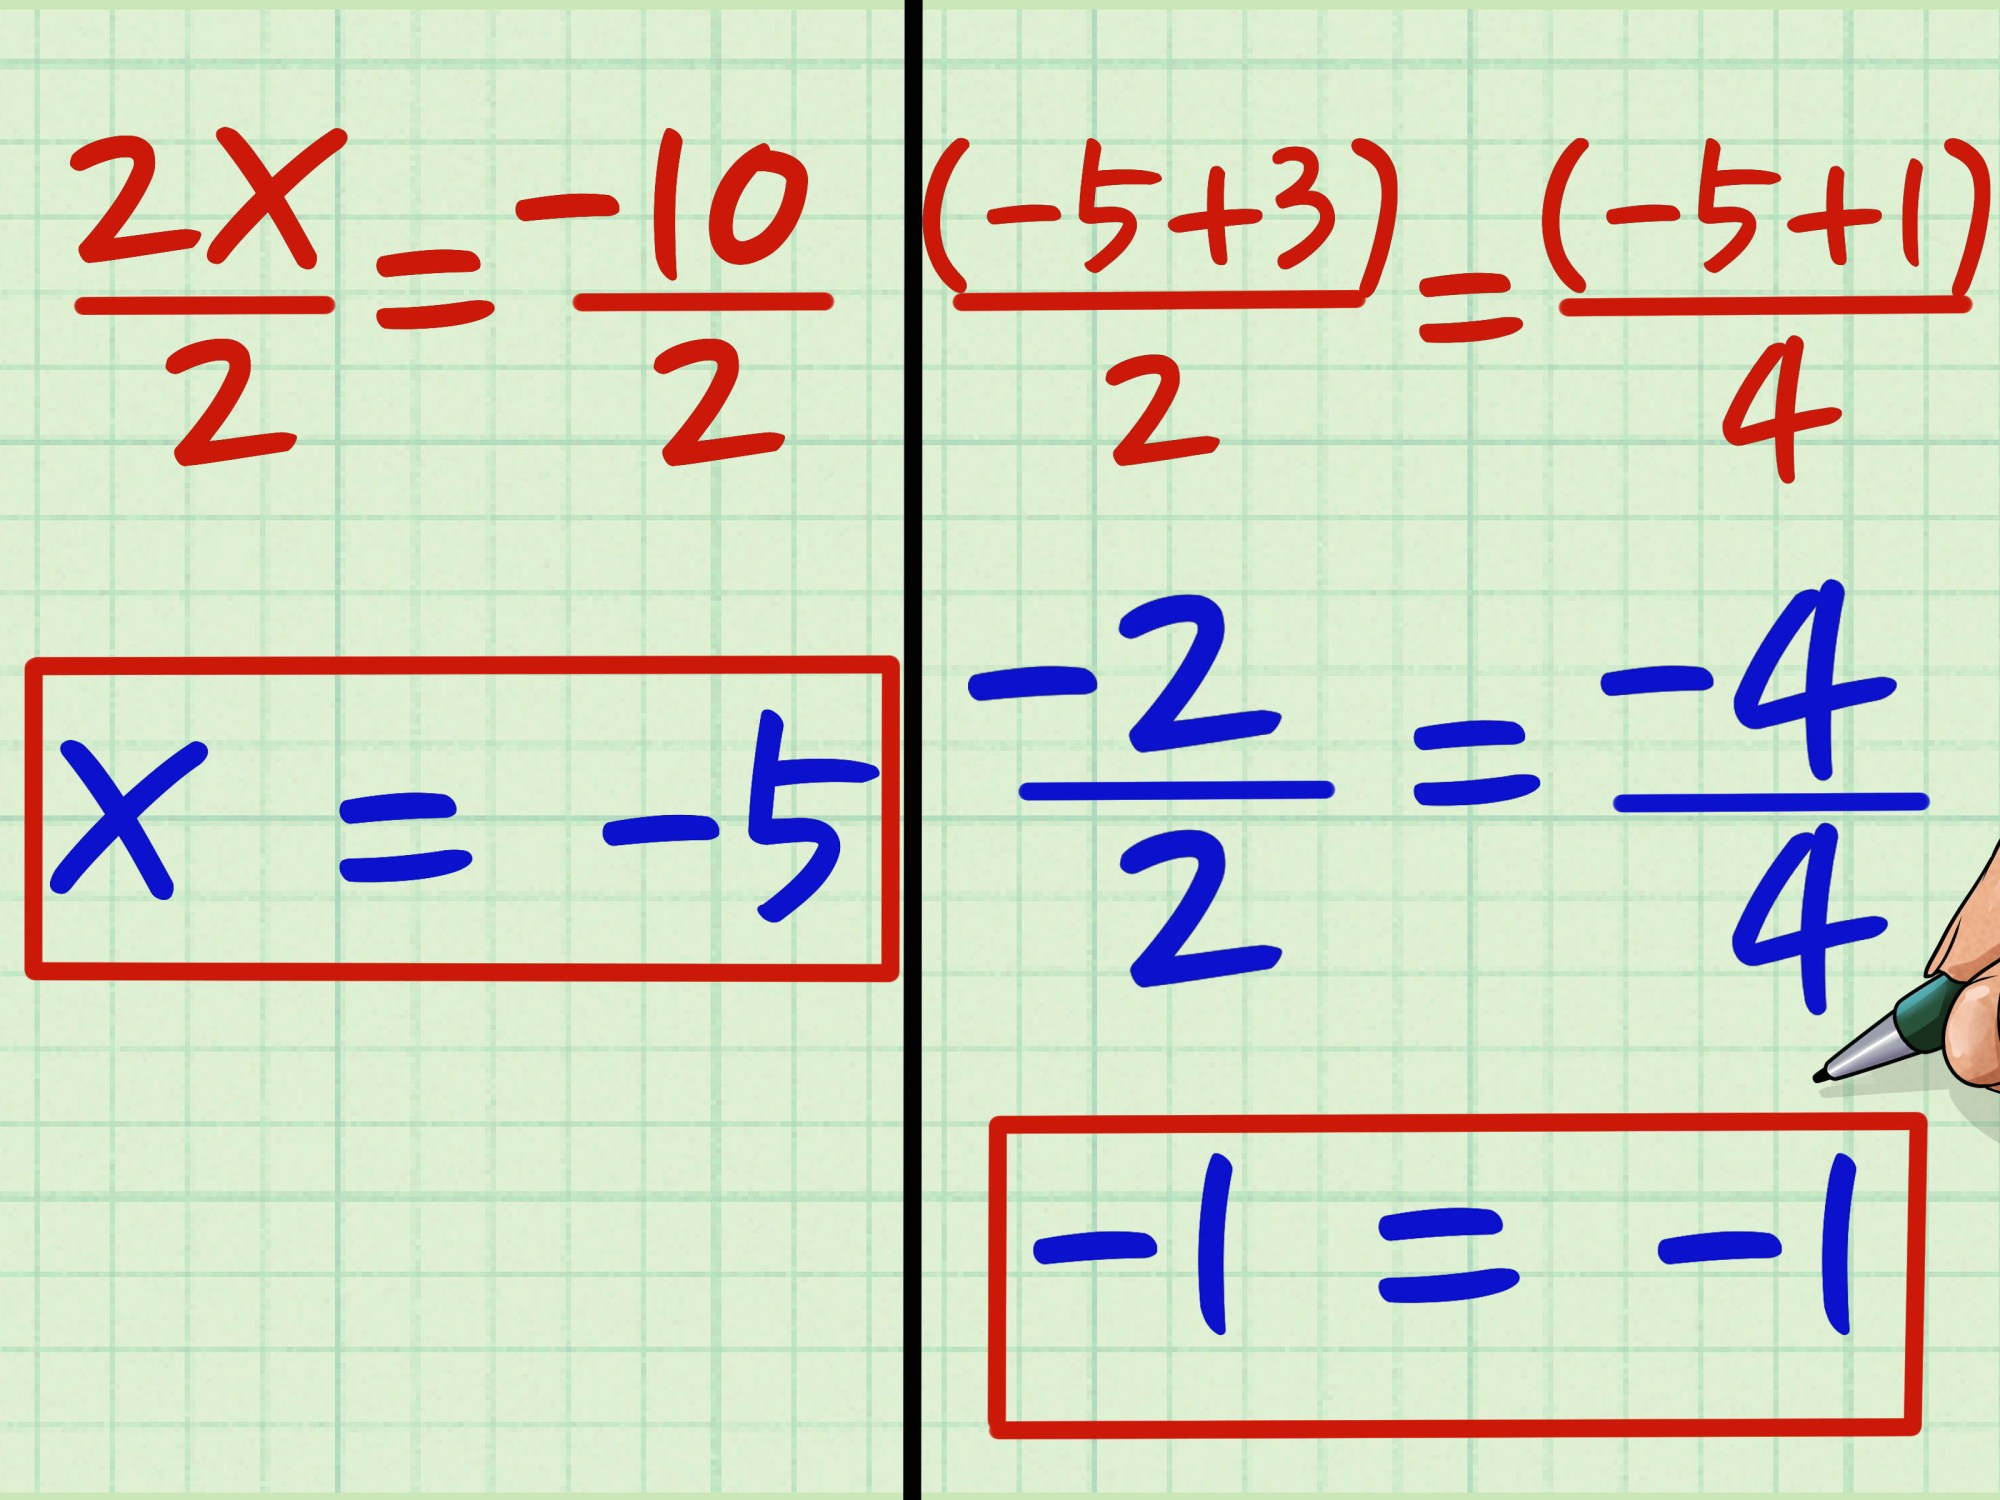 hight resolution of How to Cross Multiply: 8 Steps (with Pictures) - wikiHow